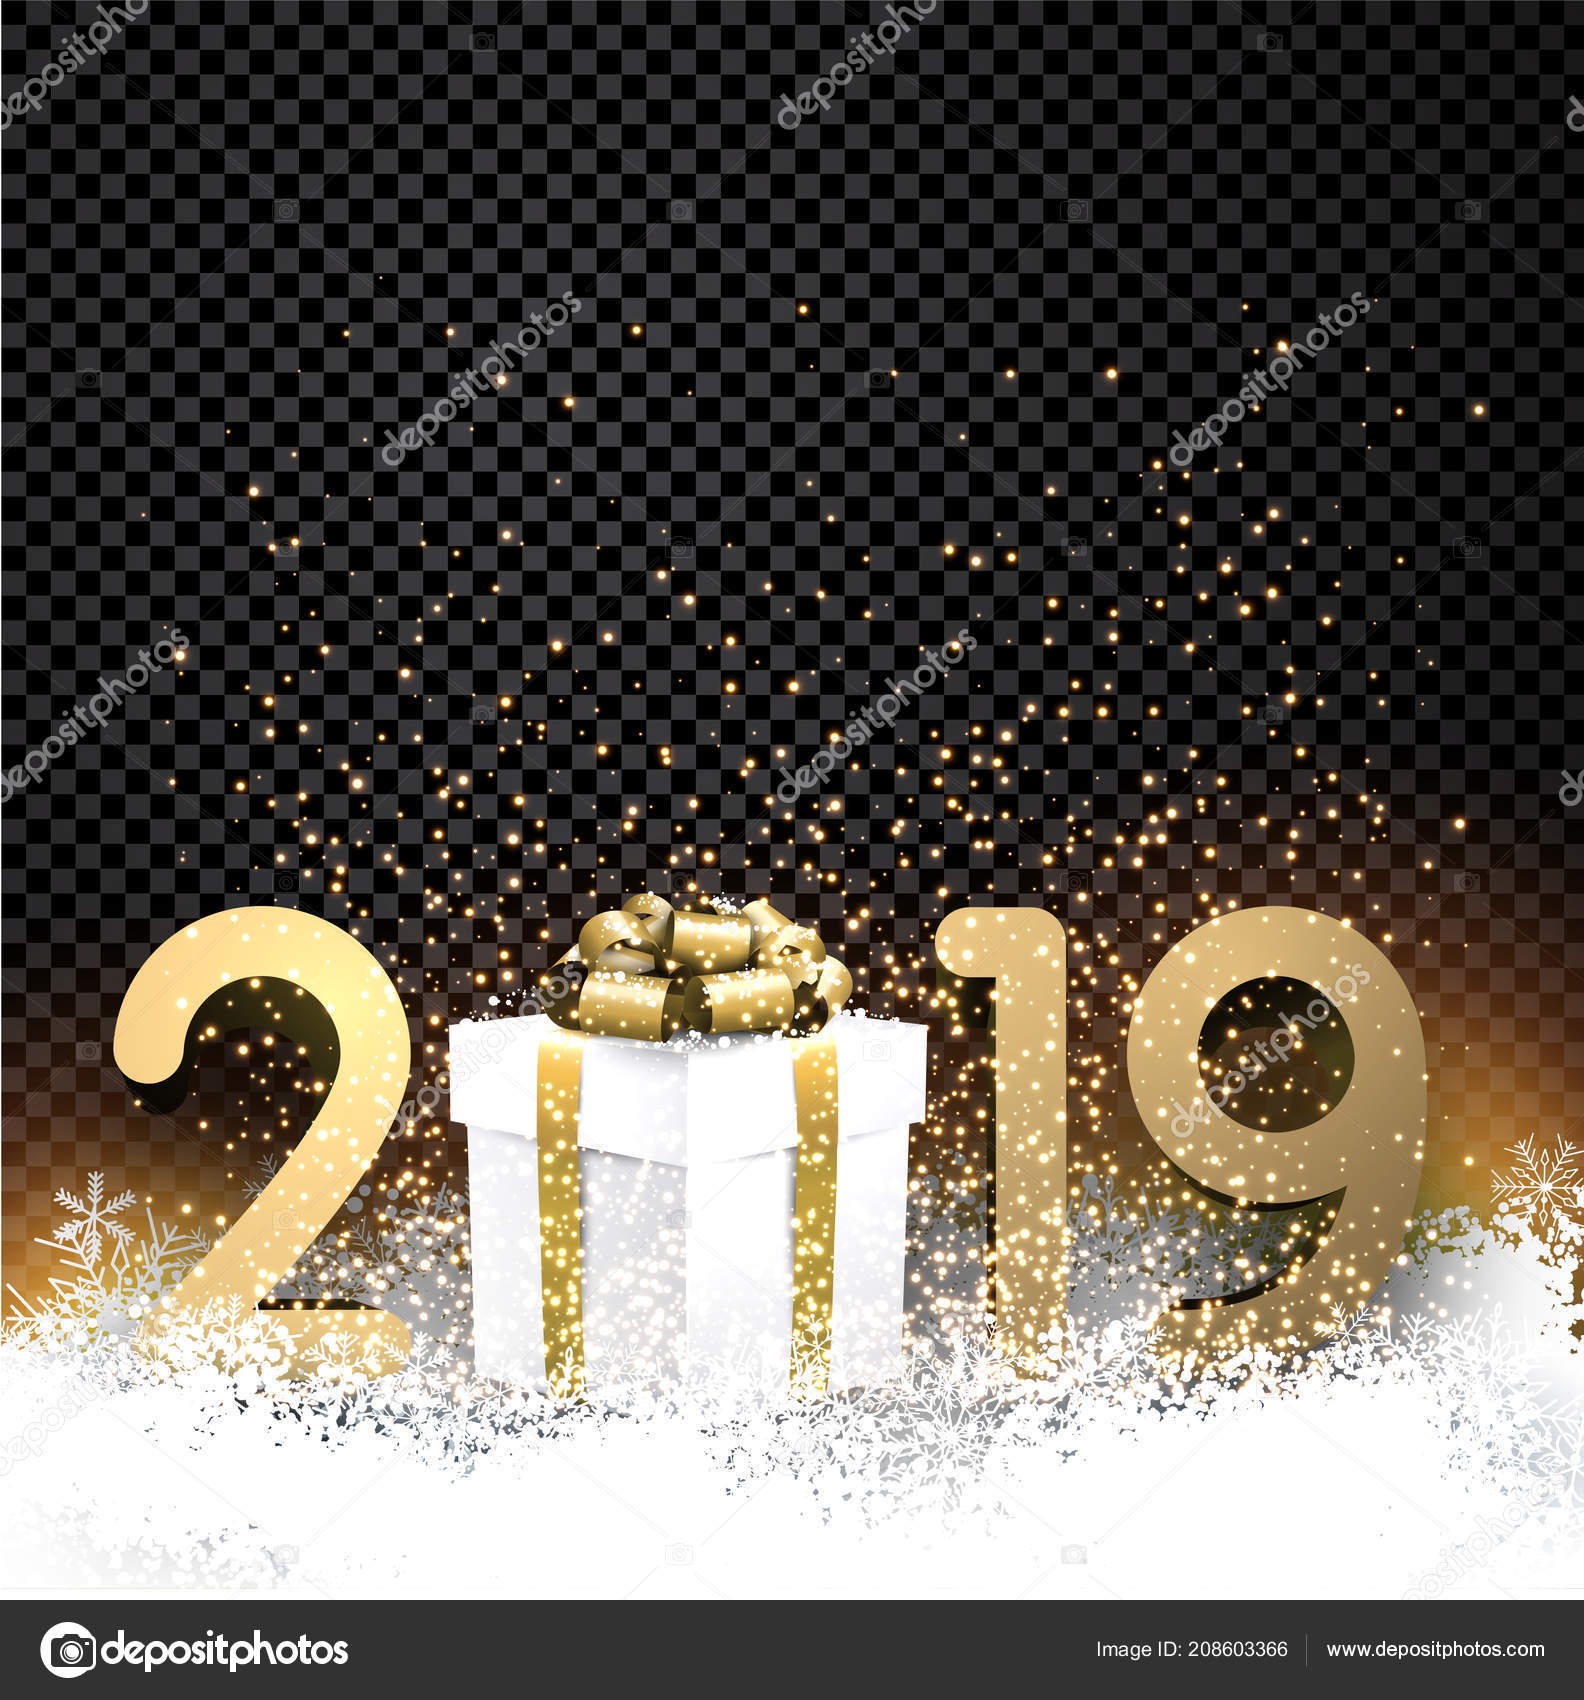 black transparent shiny 2019 new year background gold figures gift stock vector